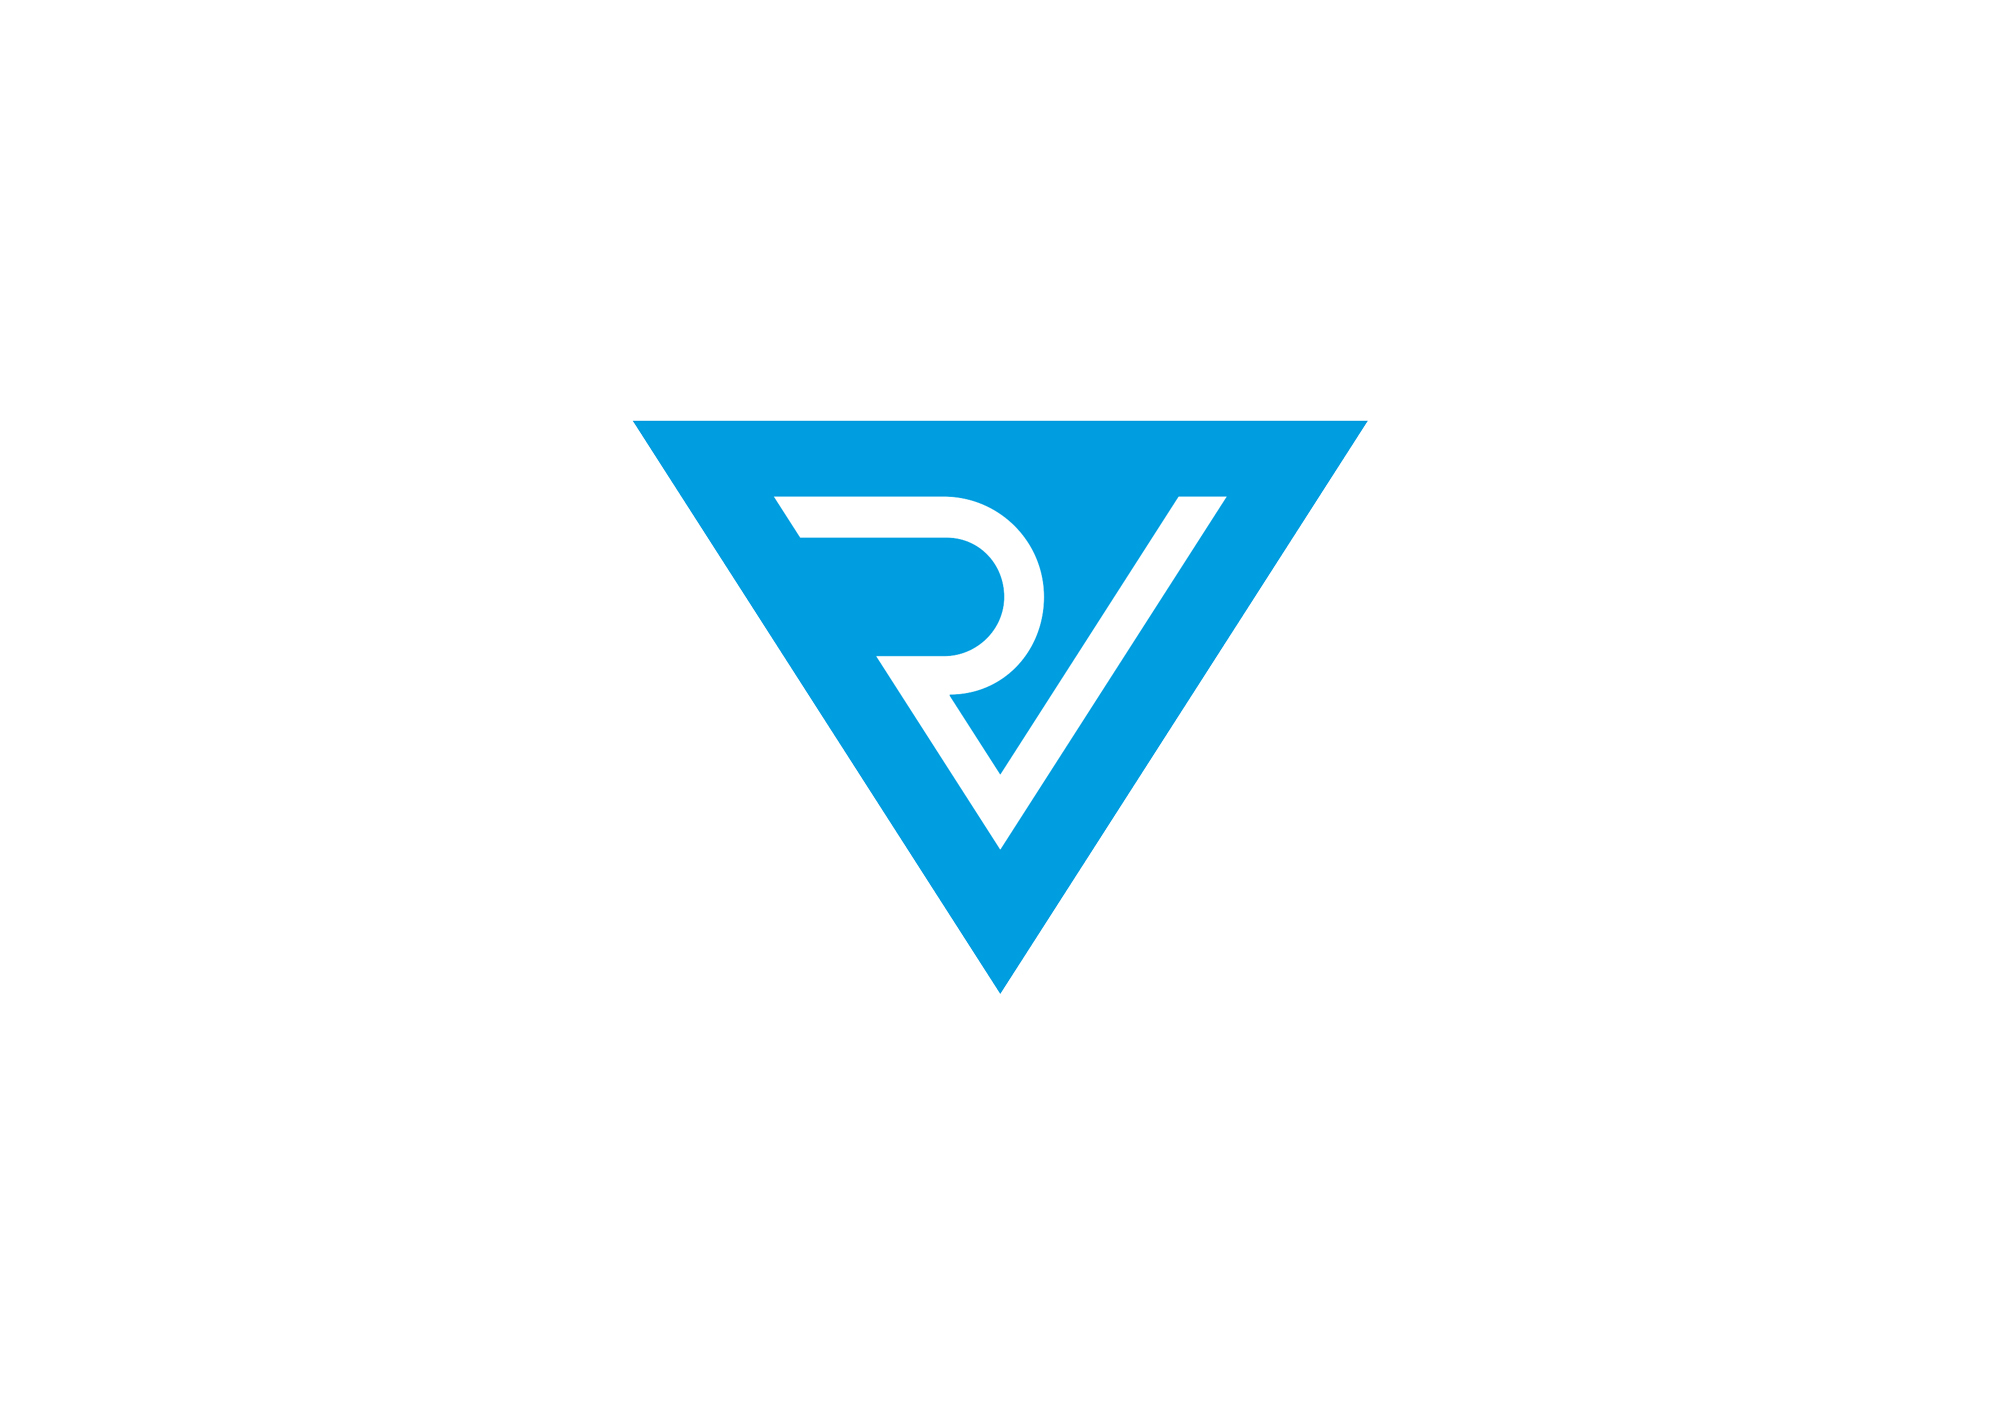 Pflaum-Verlag_Logo_Icon-Full_Color.jpg?fit=2000%2C1414